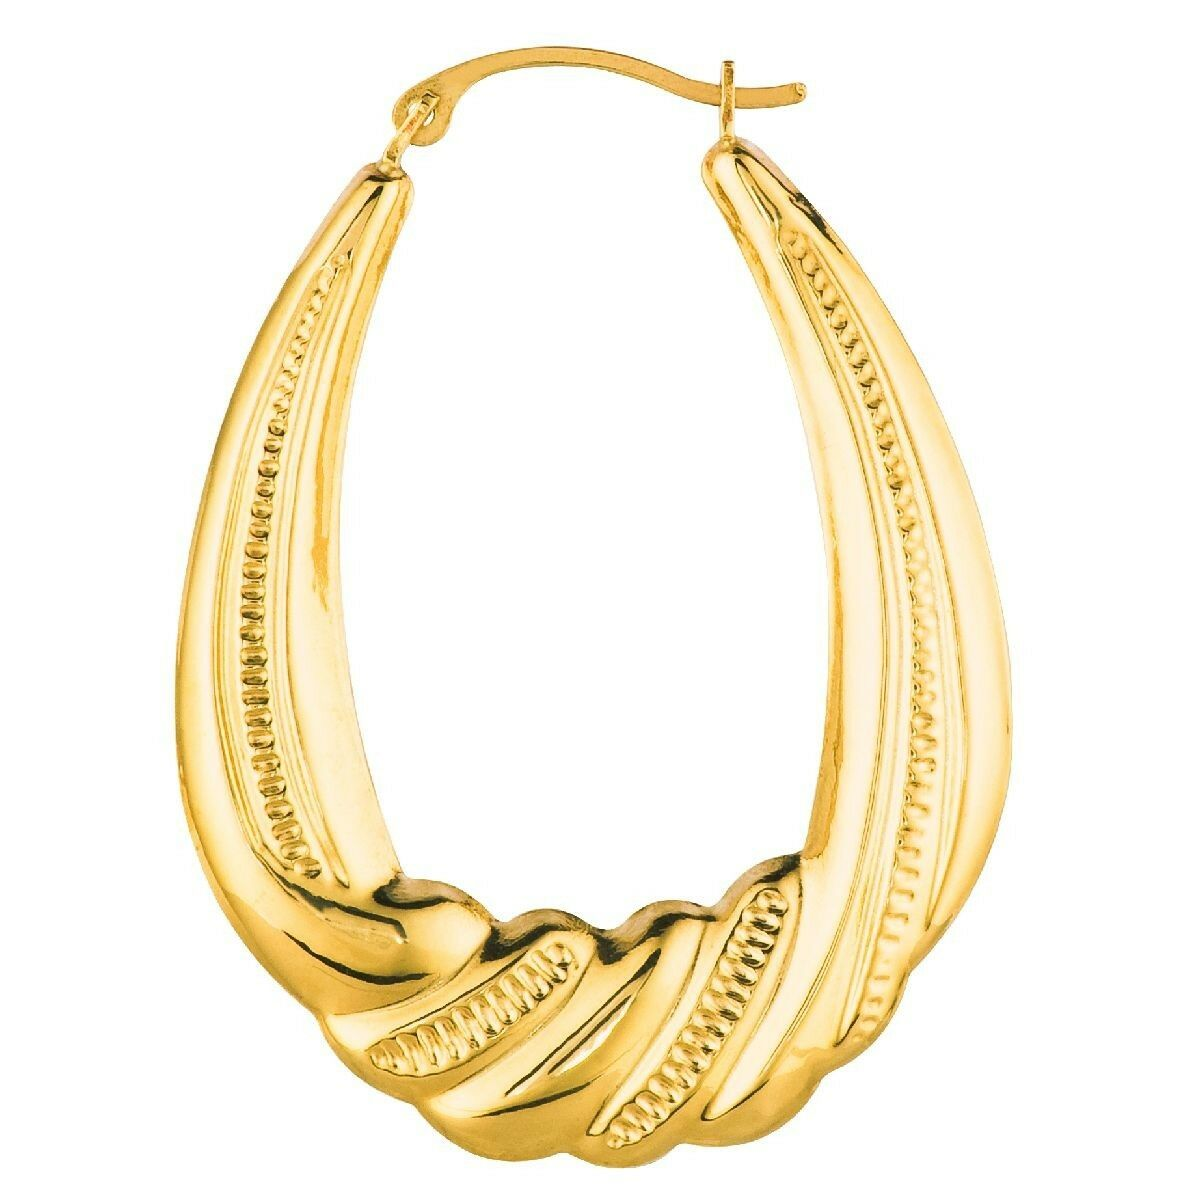 Graduated Twisted Textured Oval Hoop Earrings Real 14K Yellow gold